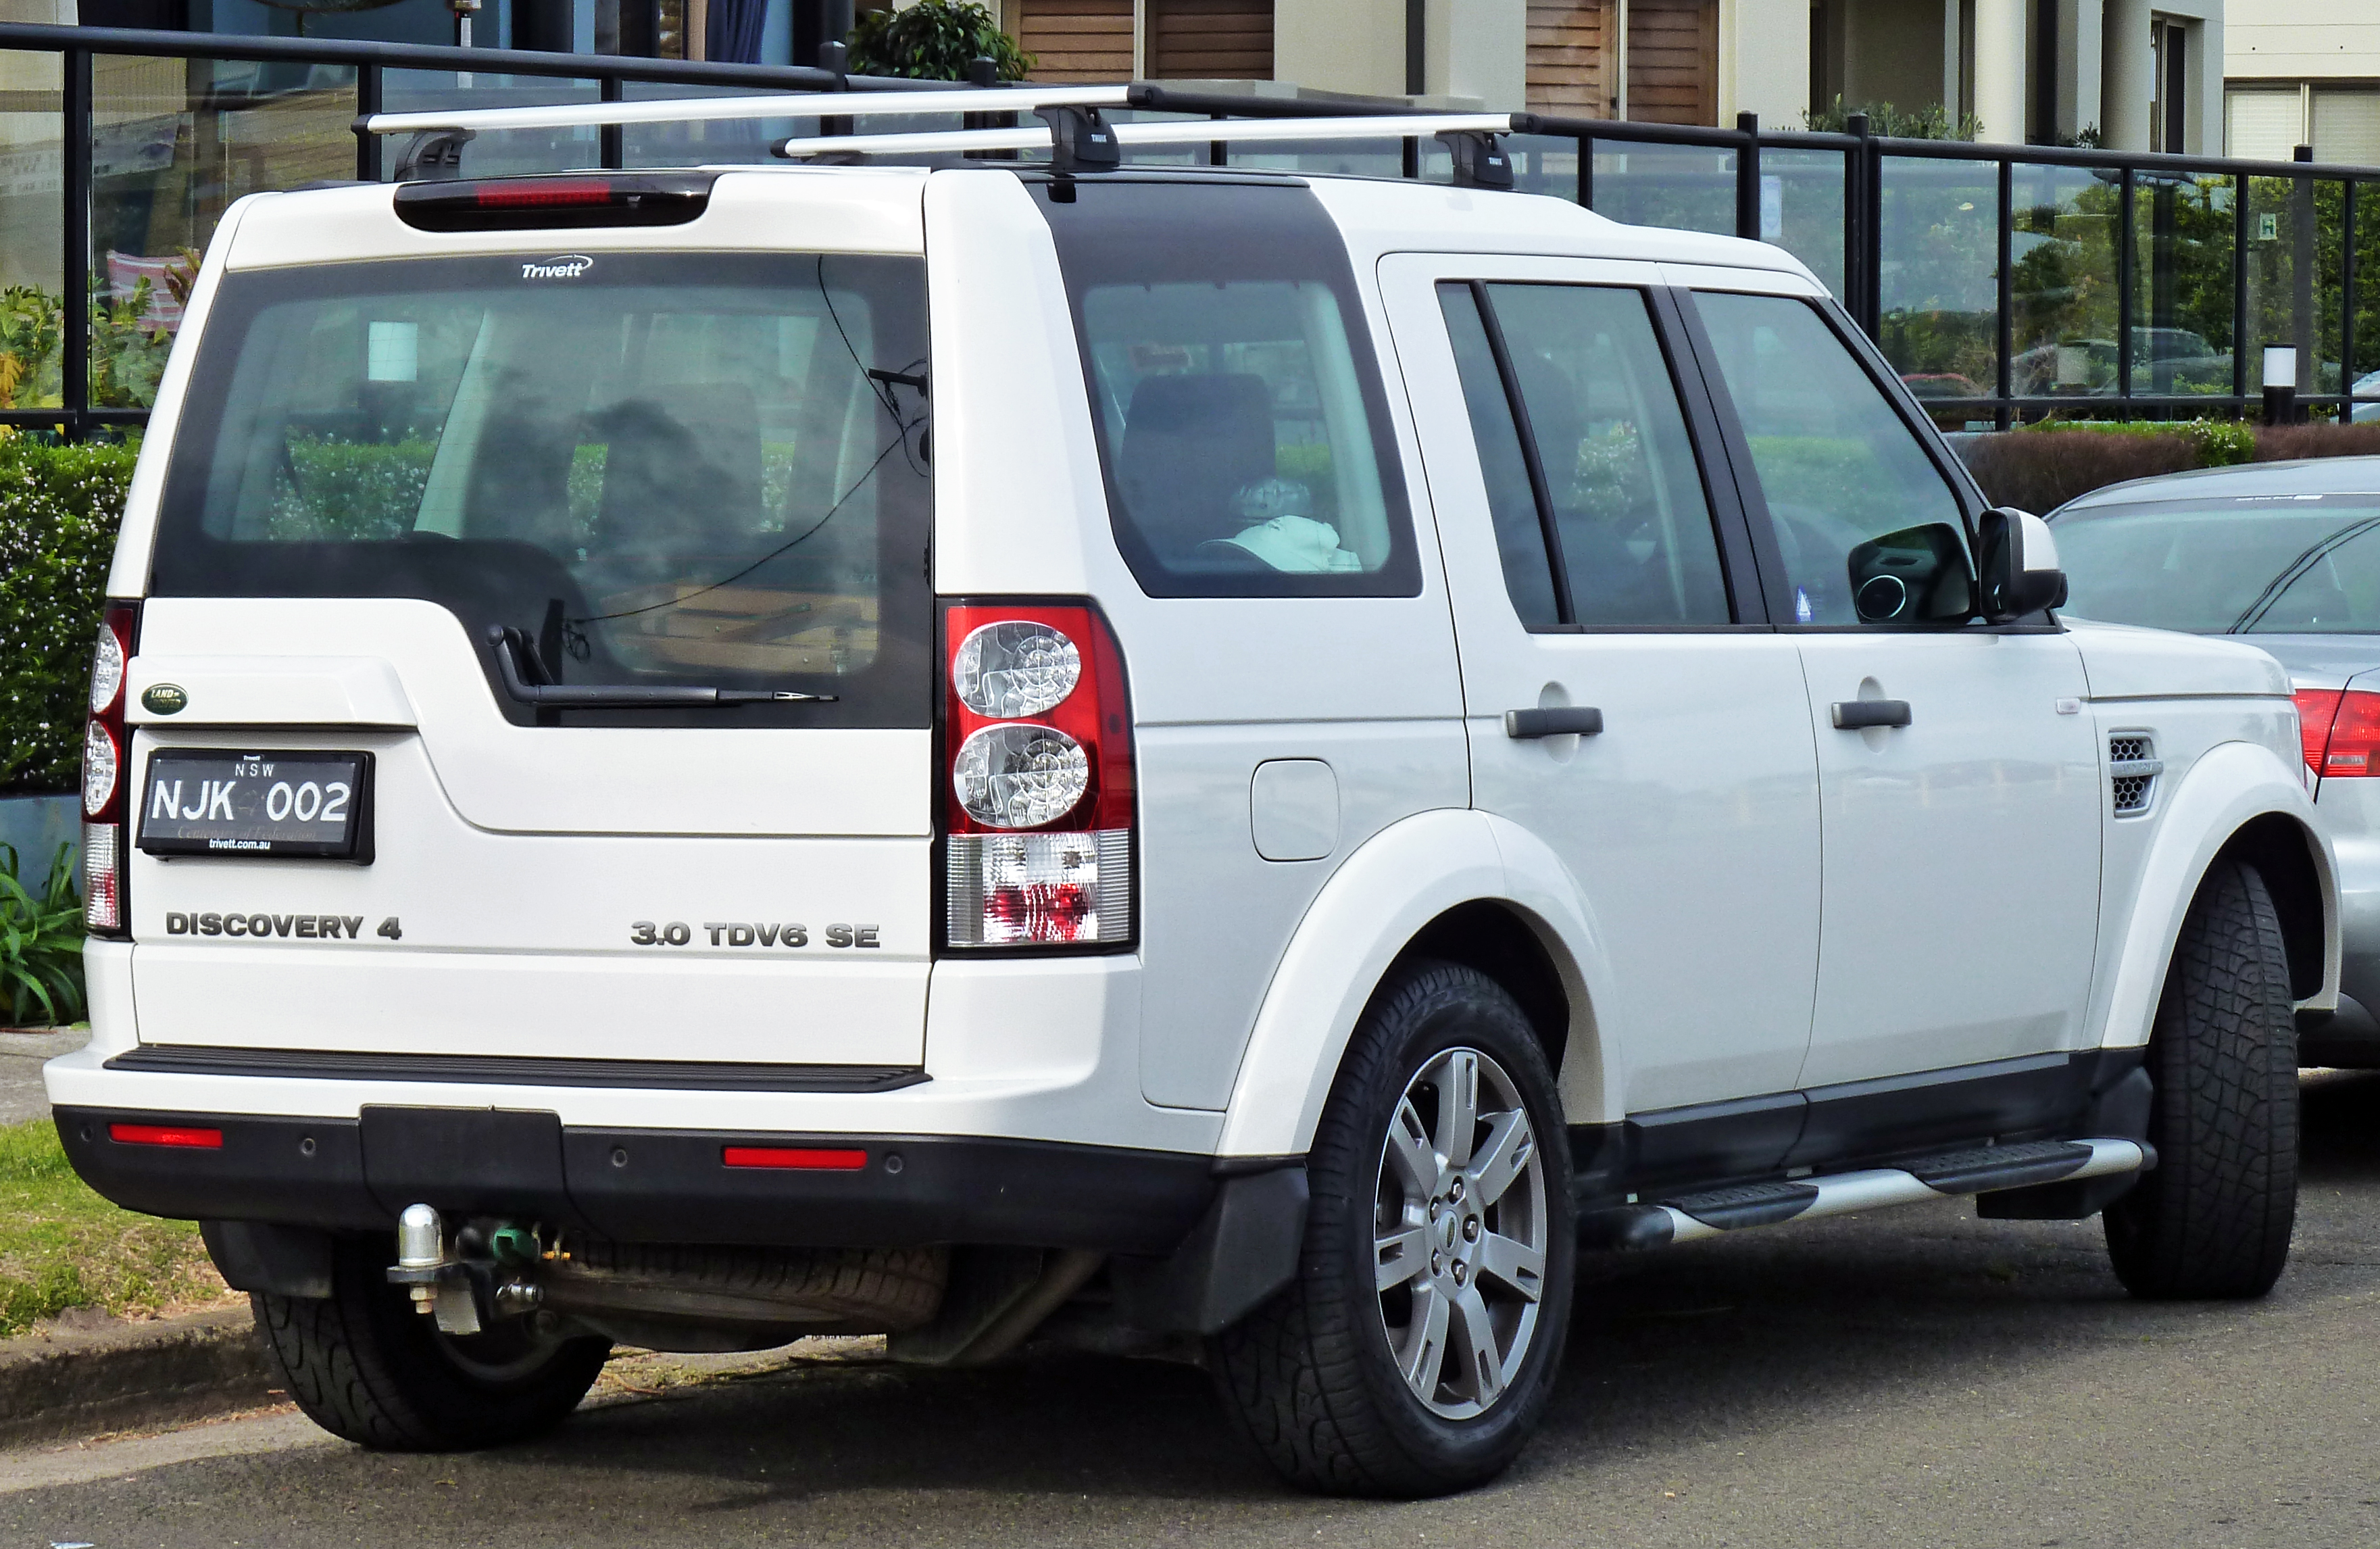 File:2009-2010 Land Rover Discovery 4 TDV6 SE wagon 02.jpg ...